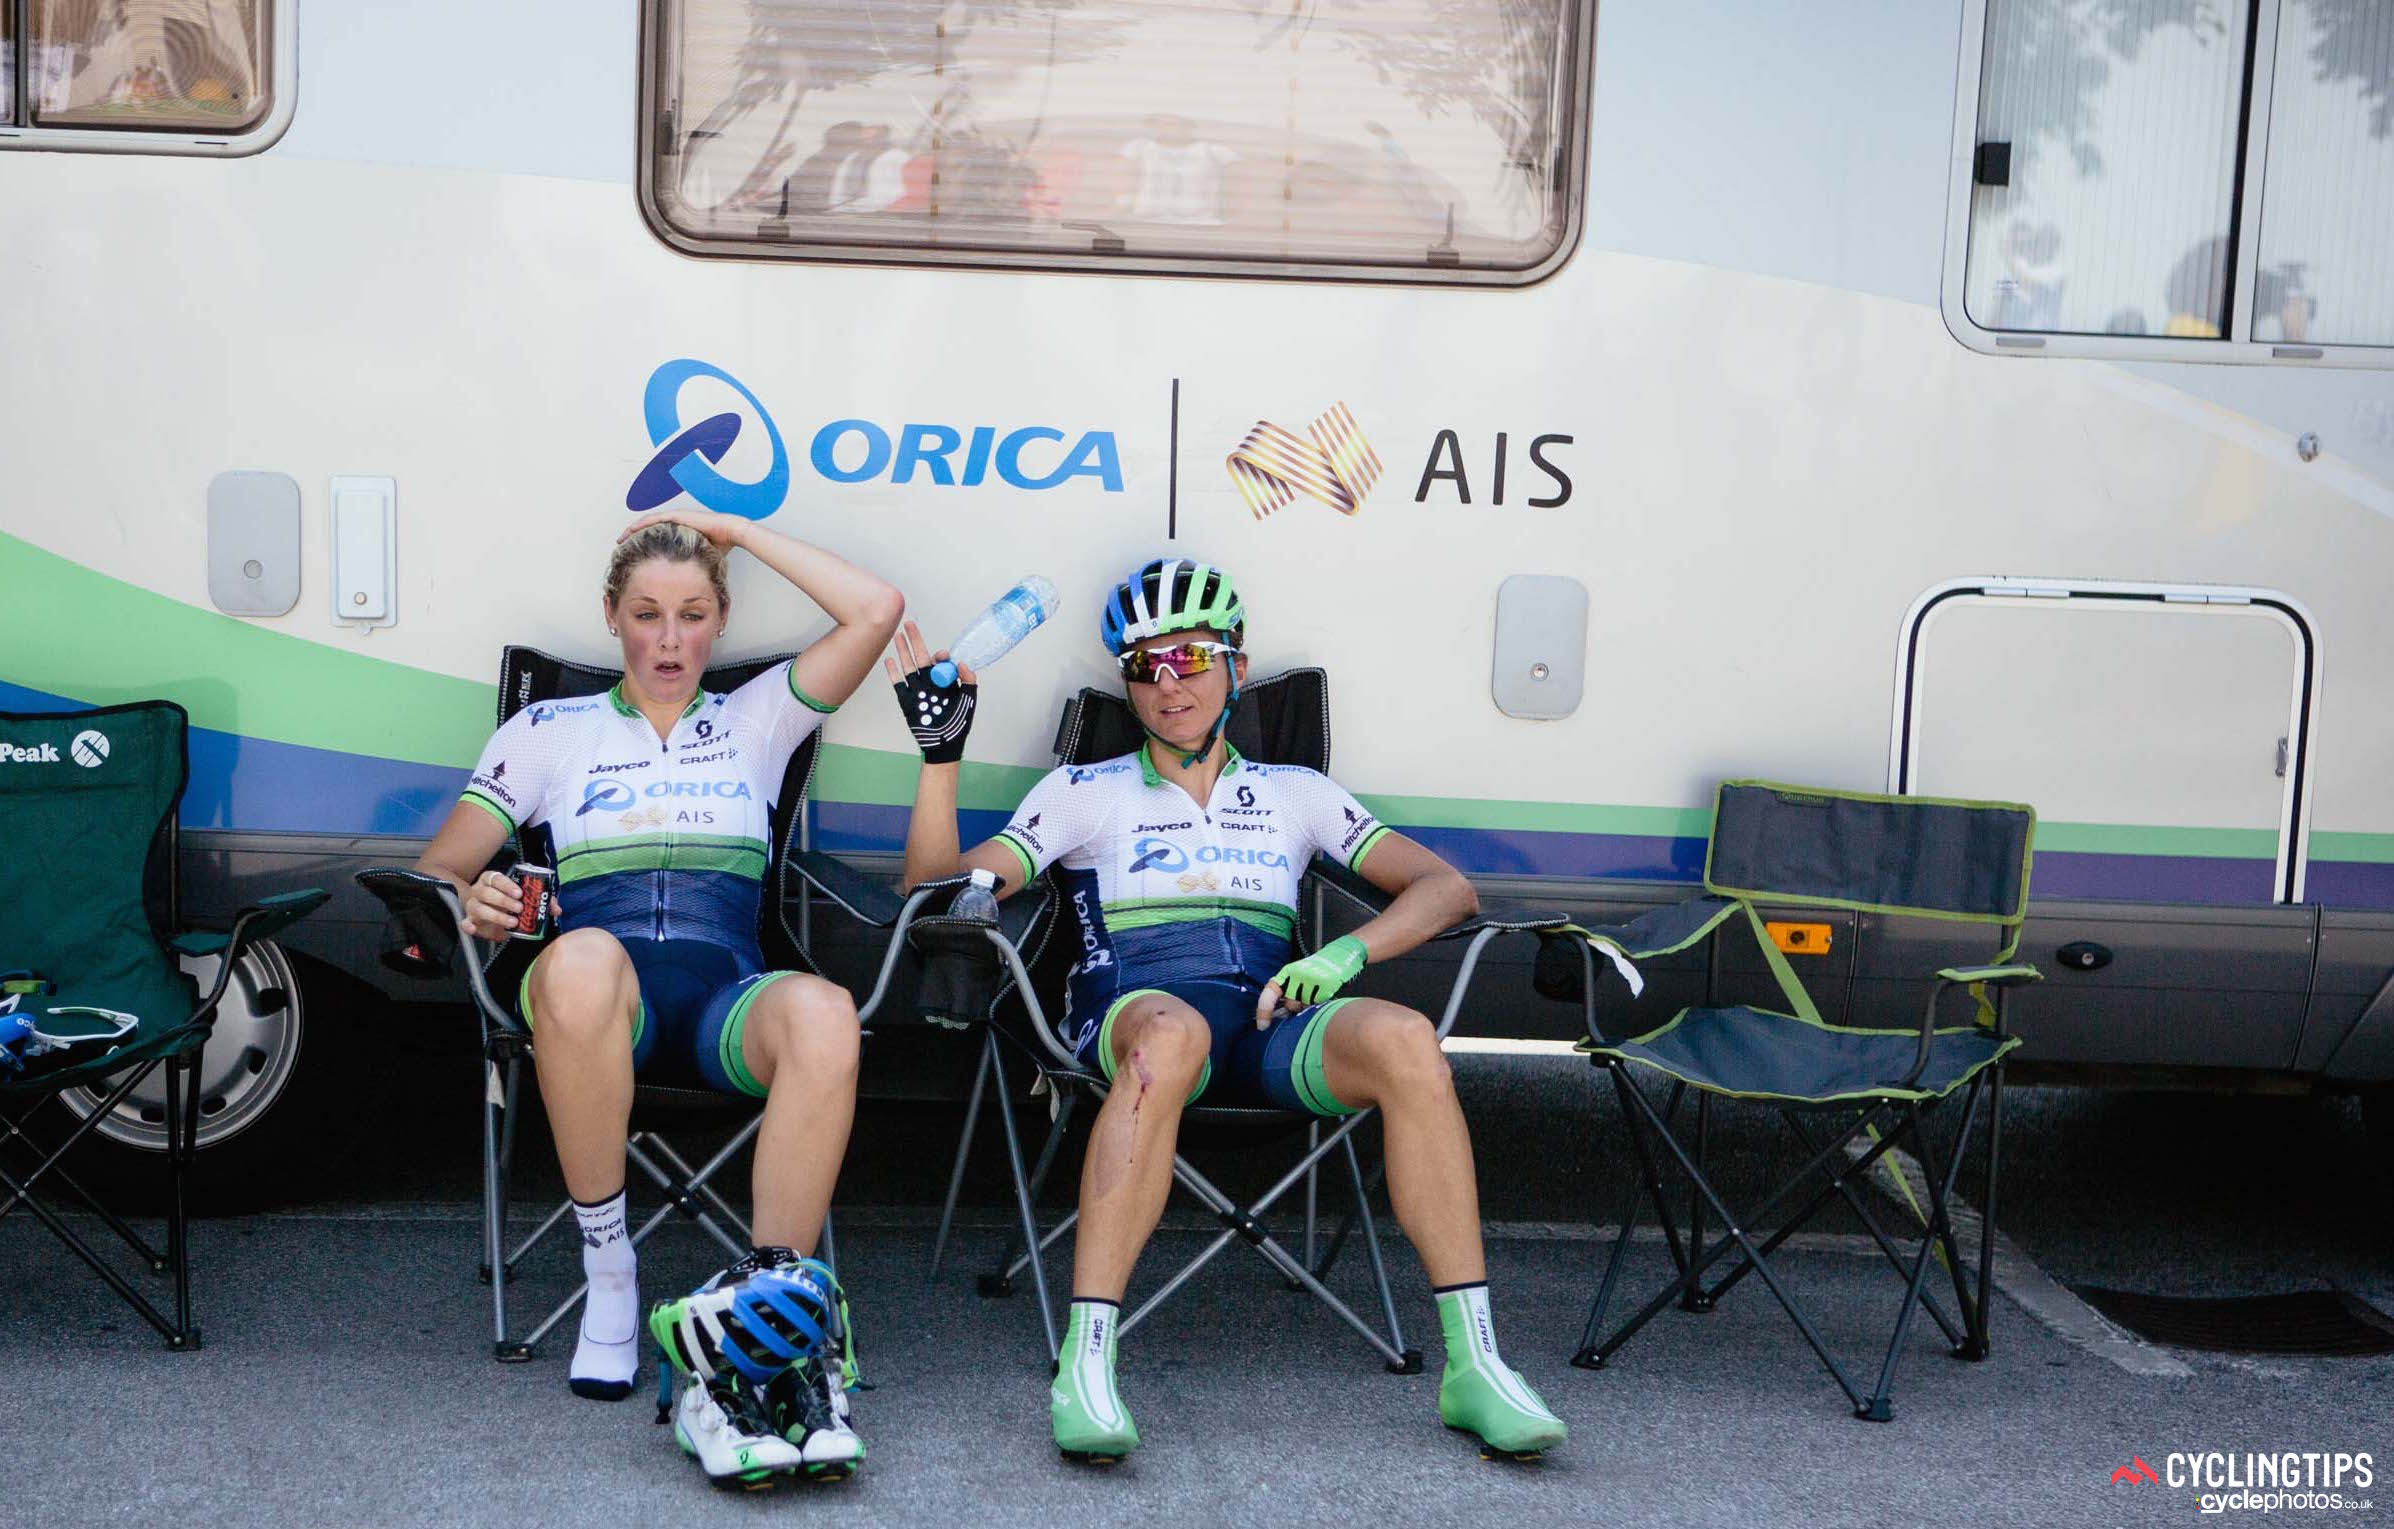 The heat during the opening road stages was as much a shock to the system as the speed. Orica-AIS teammates Macey Stewart and Katrin Garfoot recover post-race.